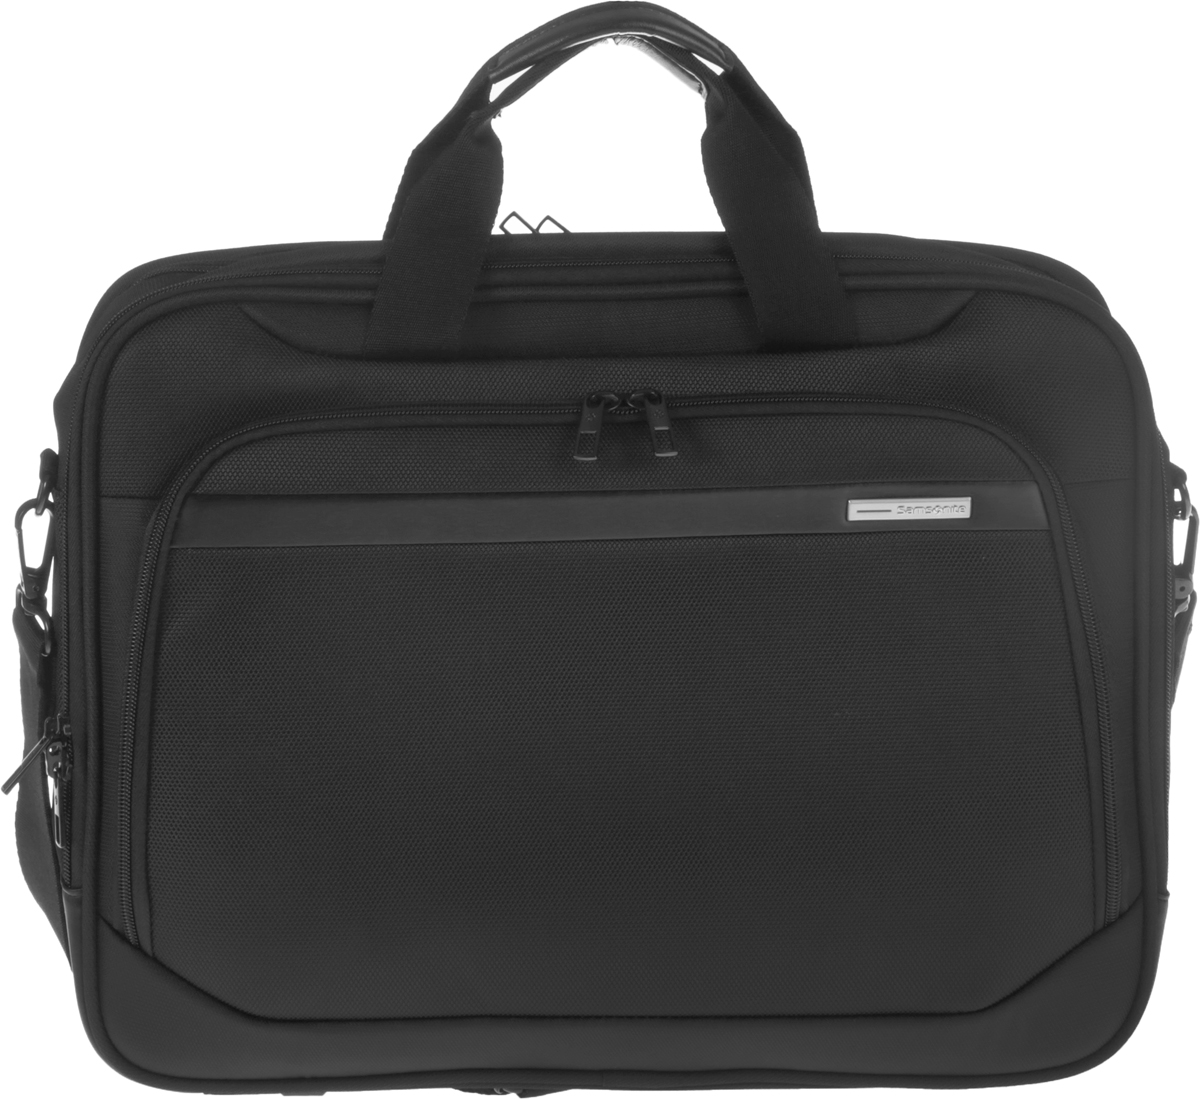 Сумка для ноутбука Samsonite GuardIt, цвет: черный, 43,5 х 33 х 13,5 см shk 6 10mm v bit 45 70 90 120 degree cnc router end mill diamond pcd tools stone hard granite cutting engraving bits pcd cutter